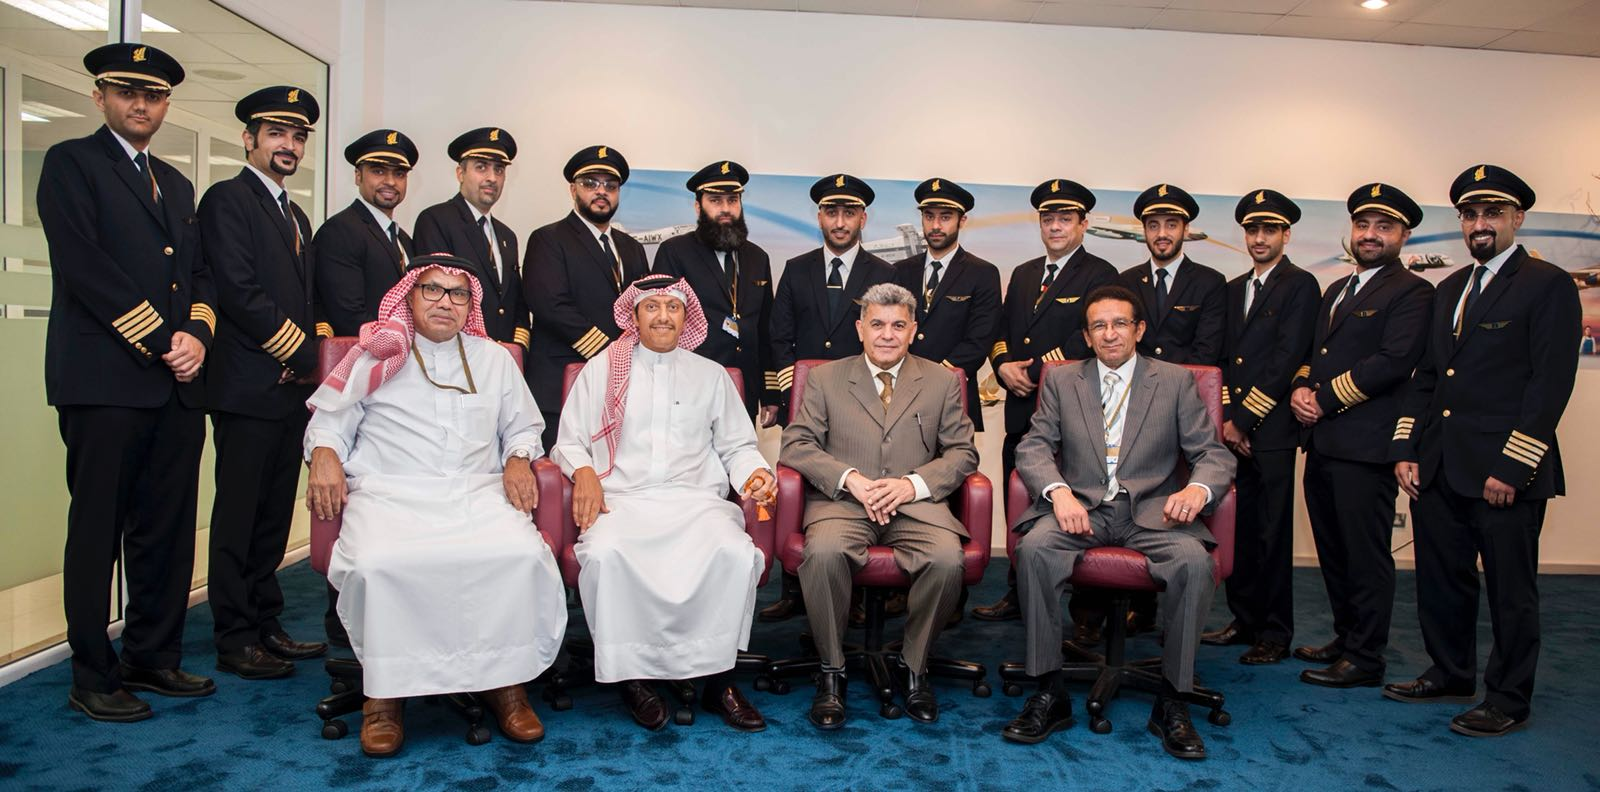 taking flight: bahraini gulf air pilots earn their stripes